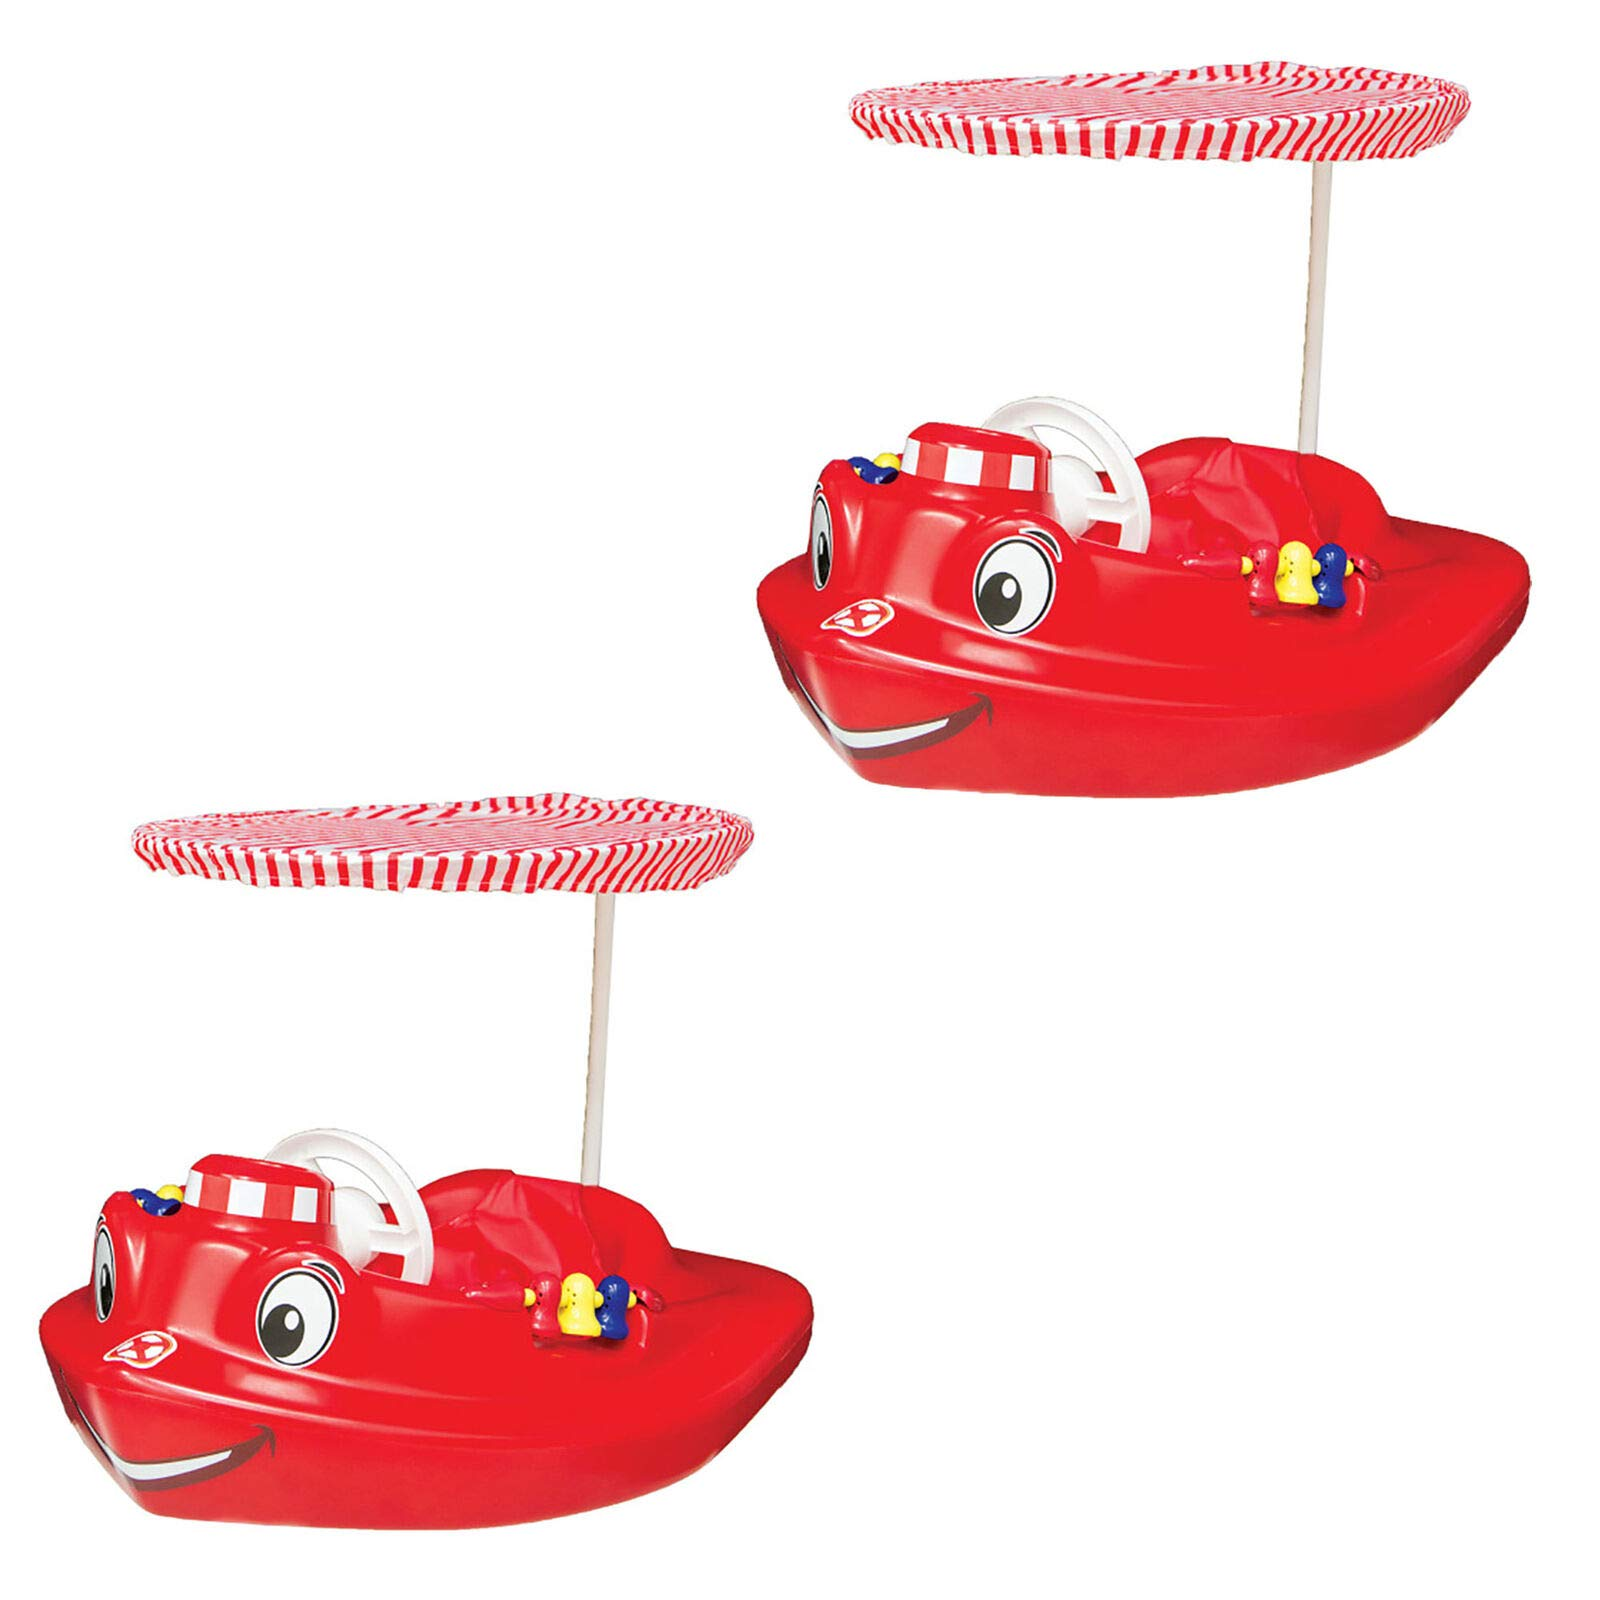 MRT SUPPLY Plastic Baby Swimming Pool Tug Boat Float with Toys and Canopy (2 Pack) with Ebook